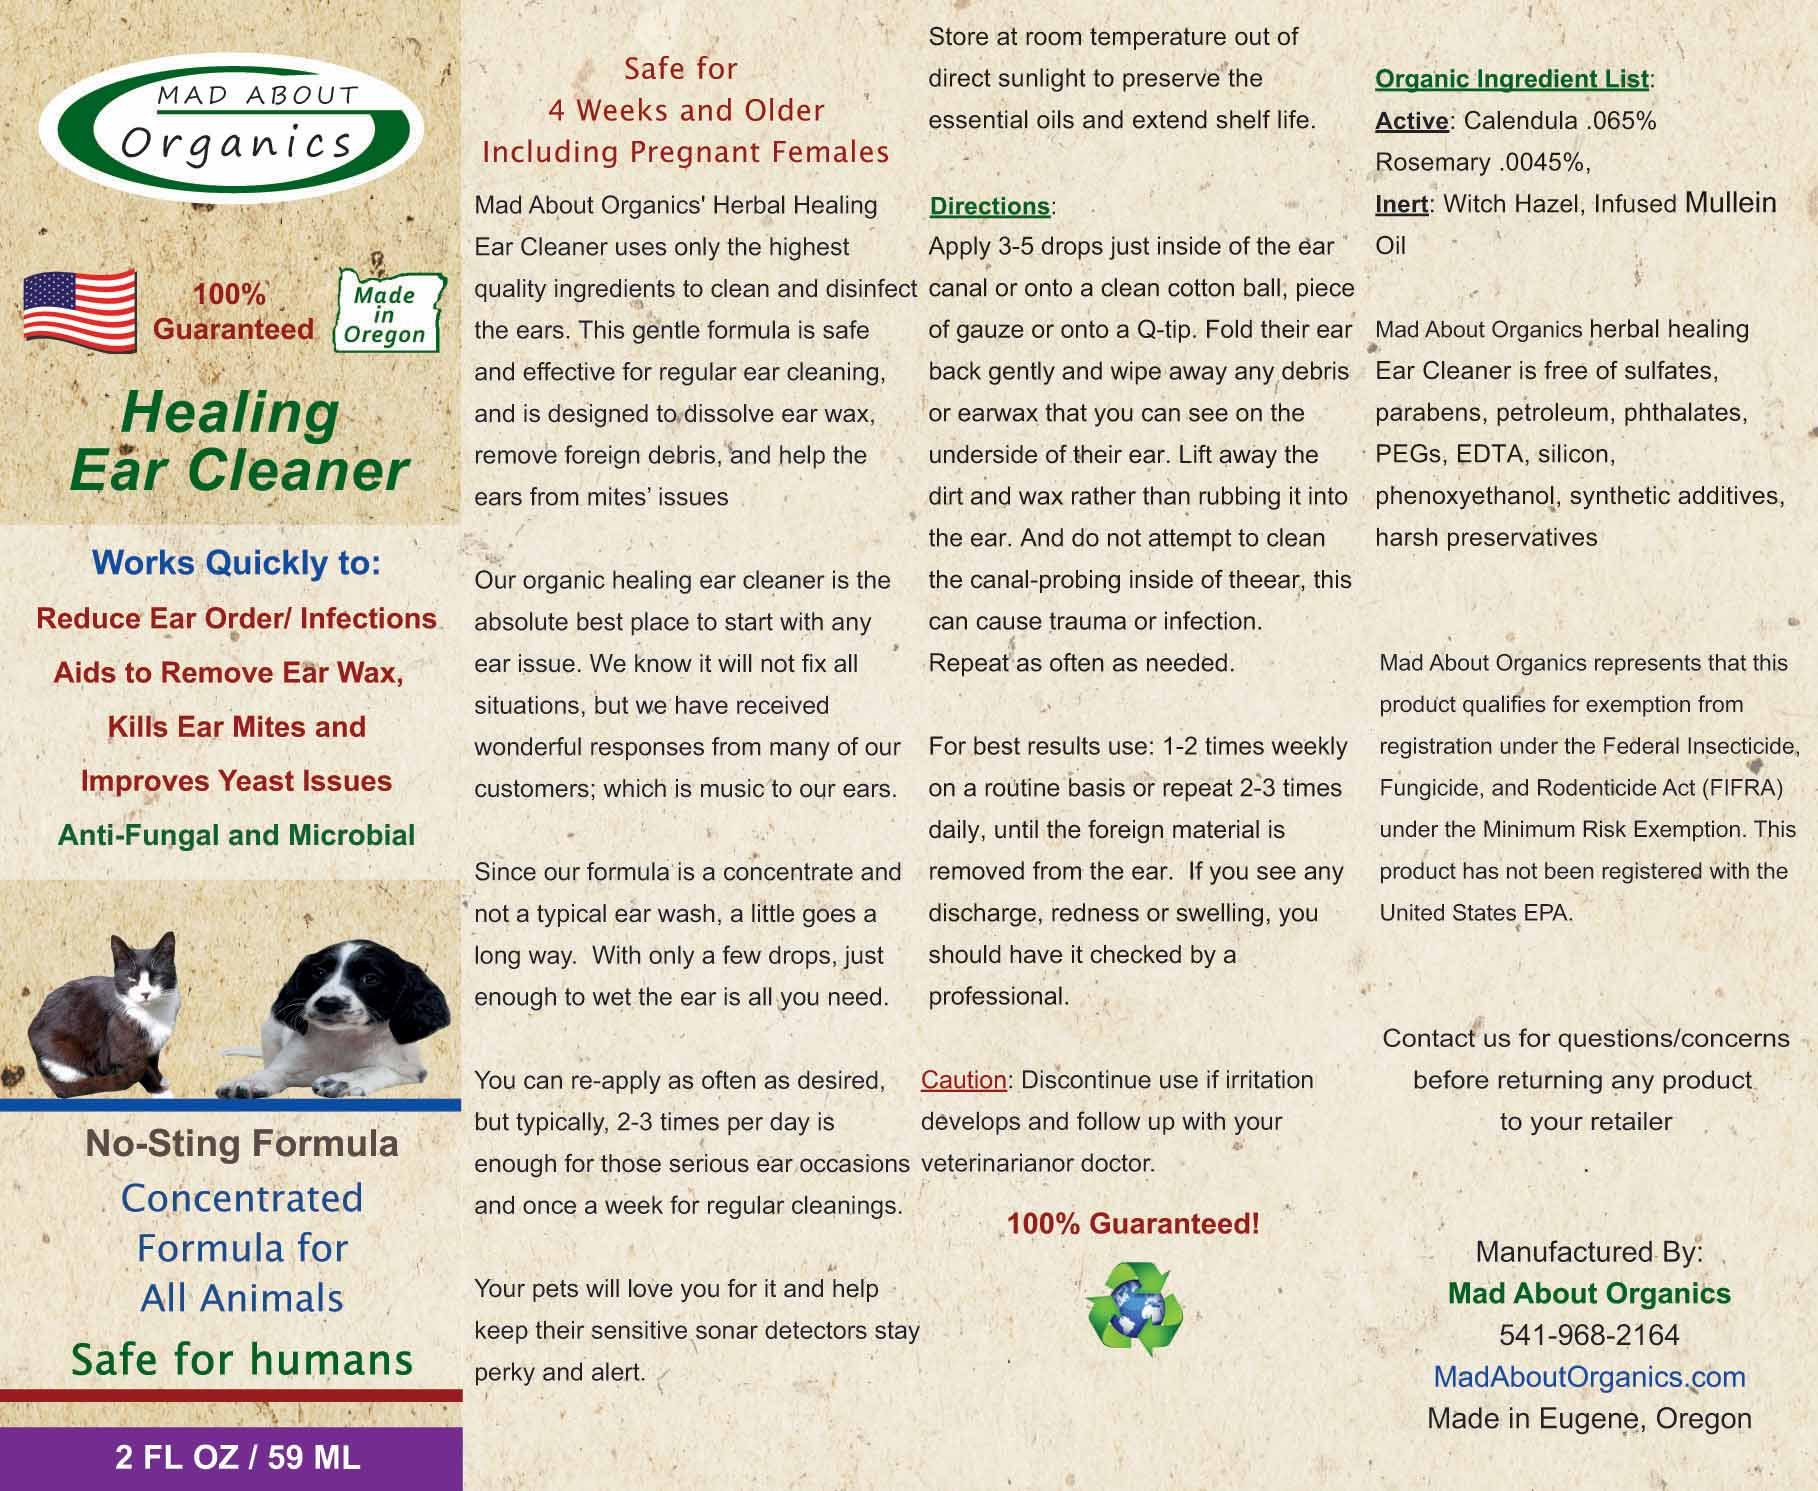 Mad About Organics All Natural Dog & Cat Healing Ear Cleaner Pain Reliever 2oz by Mad About Organics (Image #2)